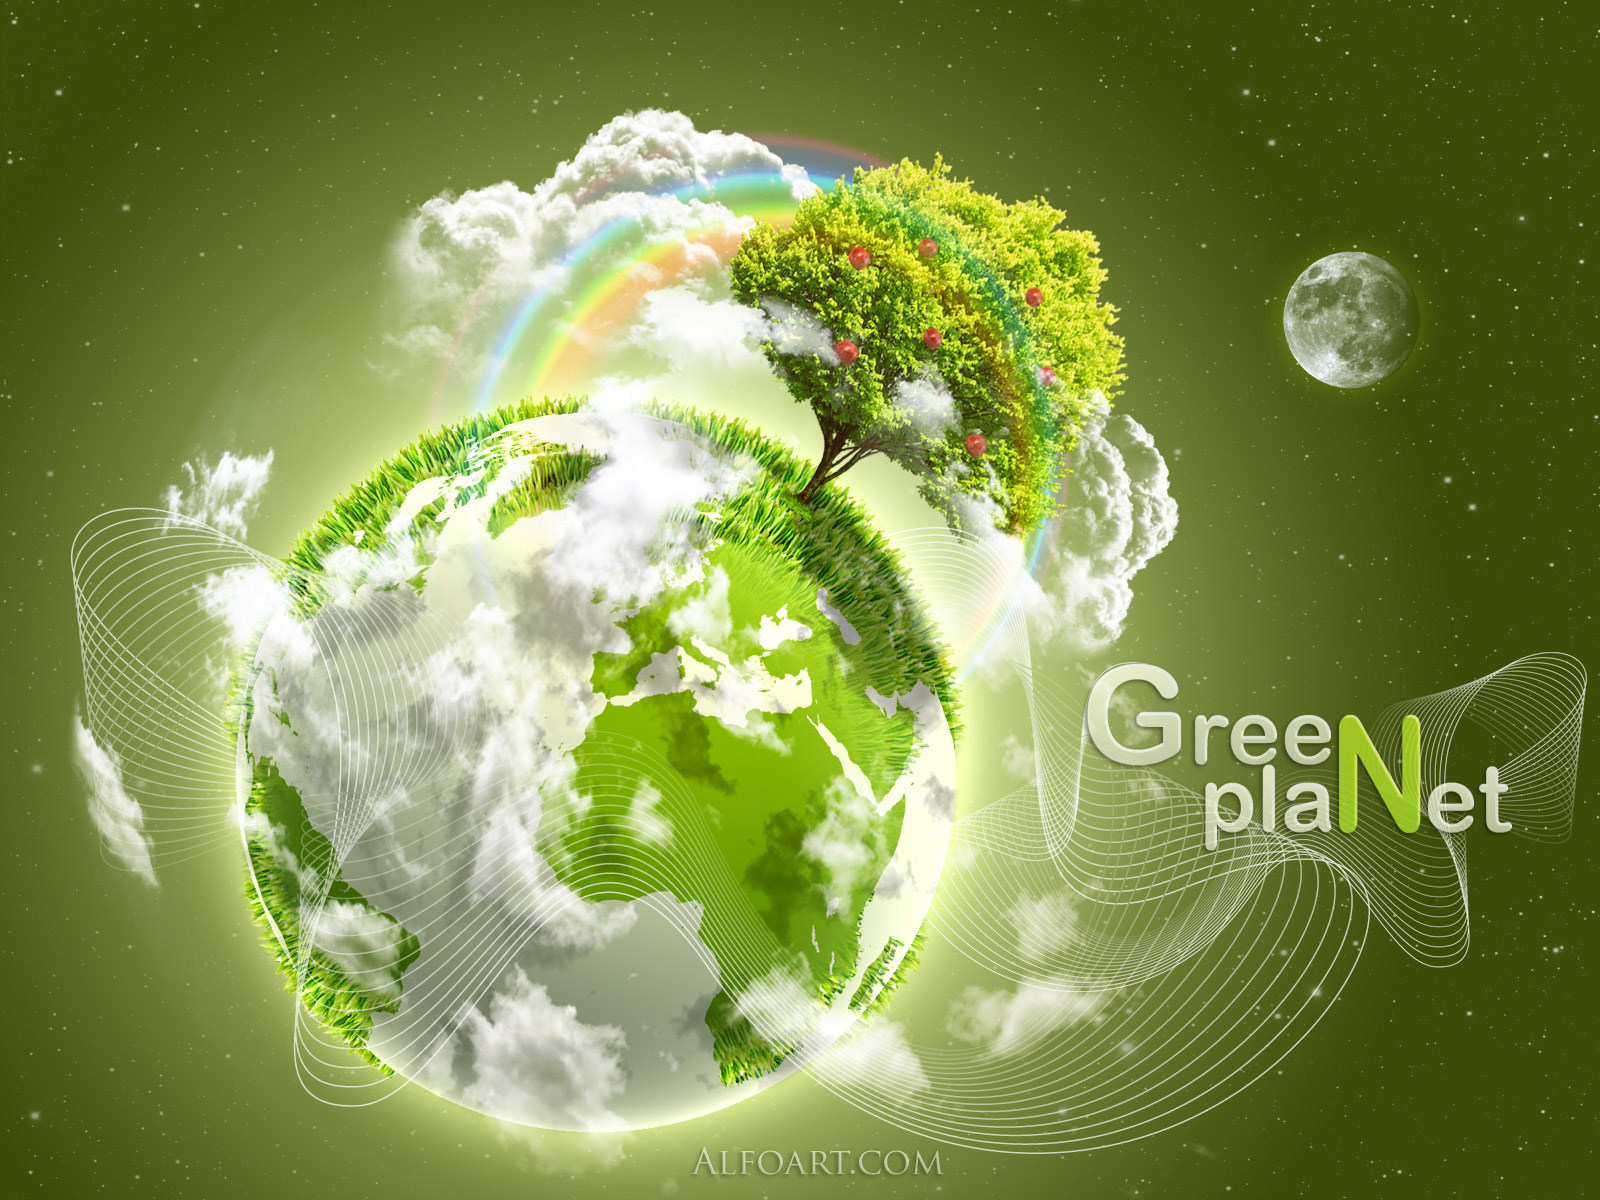 http://3.bp.blogspot.com/-VkbtwkjLsC8/T5MpMbV_MwI/AAAAAAAAA-4/I5U0pdoHrG8/s1600/earthday_wallpapers_quotes_images_gogreen_environmental(www.picturespool.blogspot.com)_03.jpg